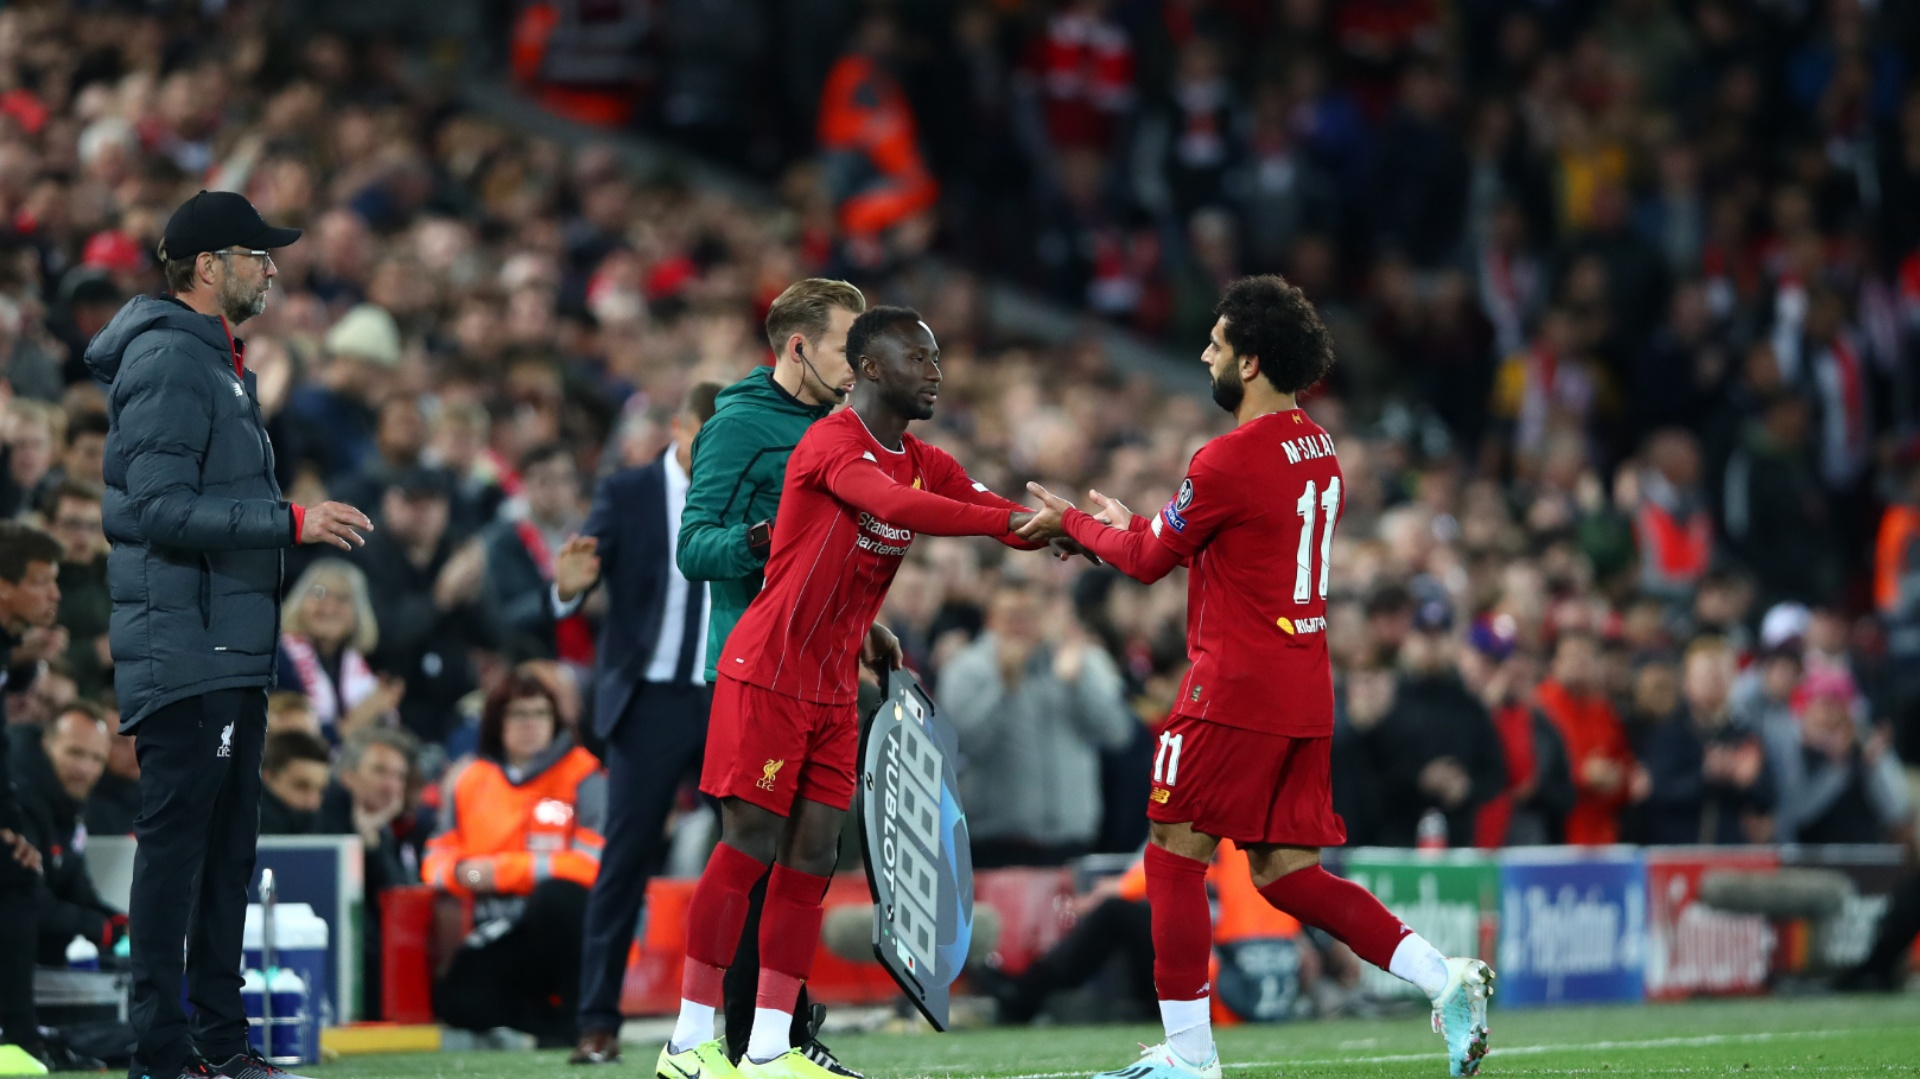 Naby Keita hopes to be Klopp's 'favourite' at Liverpool